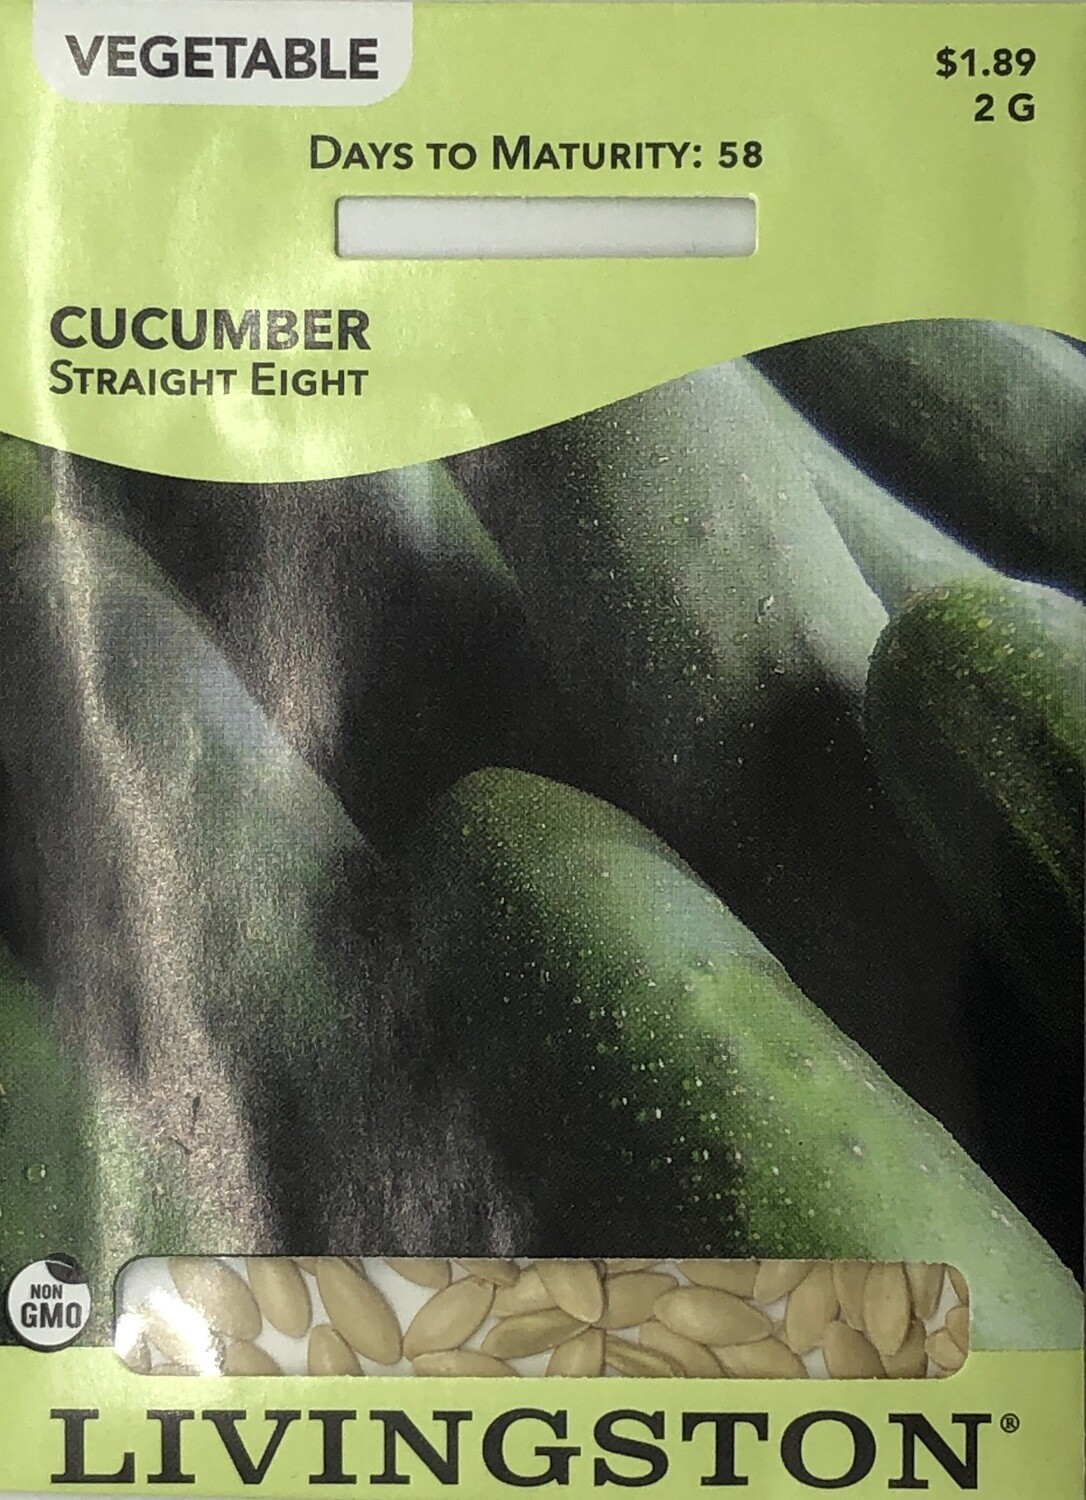 CUCUMBER - STRAIGHT EIGHT